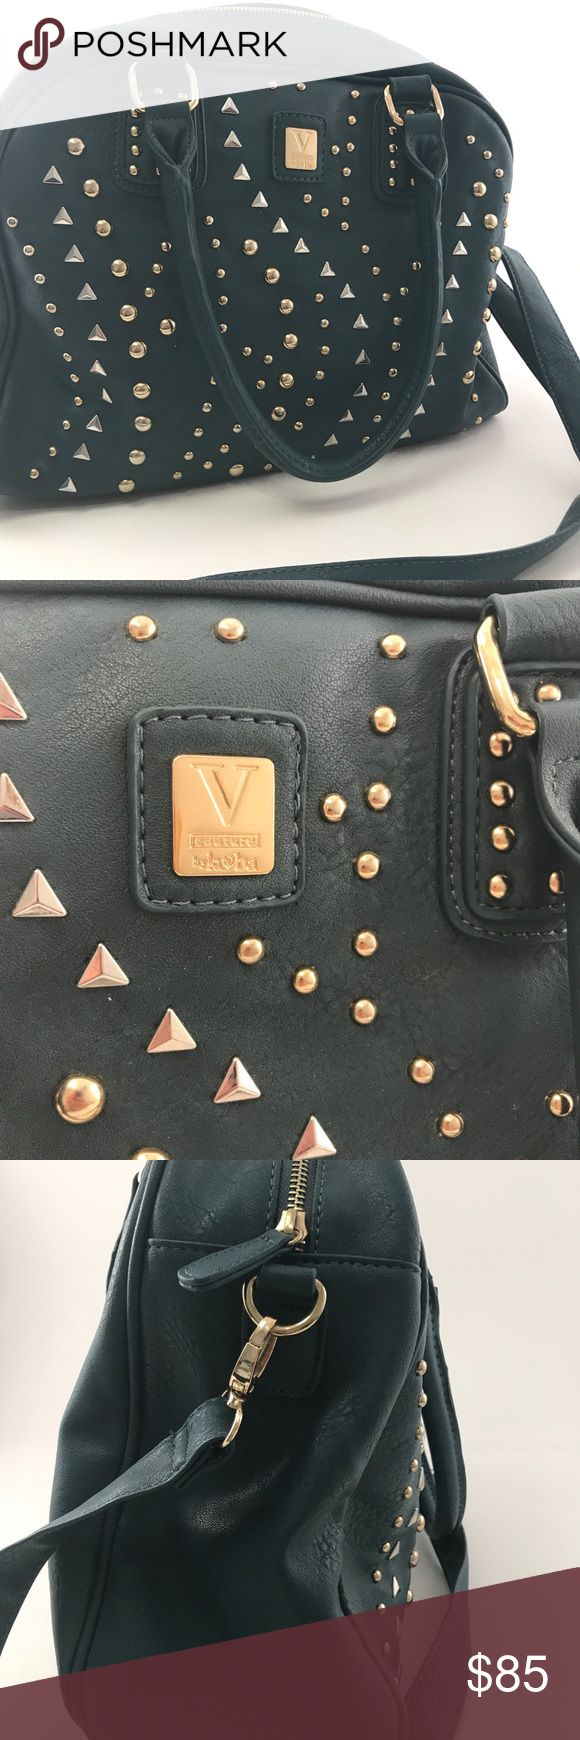 V couture by Kooba teal studded cross body satchel Preowned but never used V couture by Kooba teal cross body satchel. Studded design. See pictures. Great fall purse! V couture Bags Satchels #Satchels